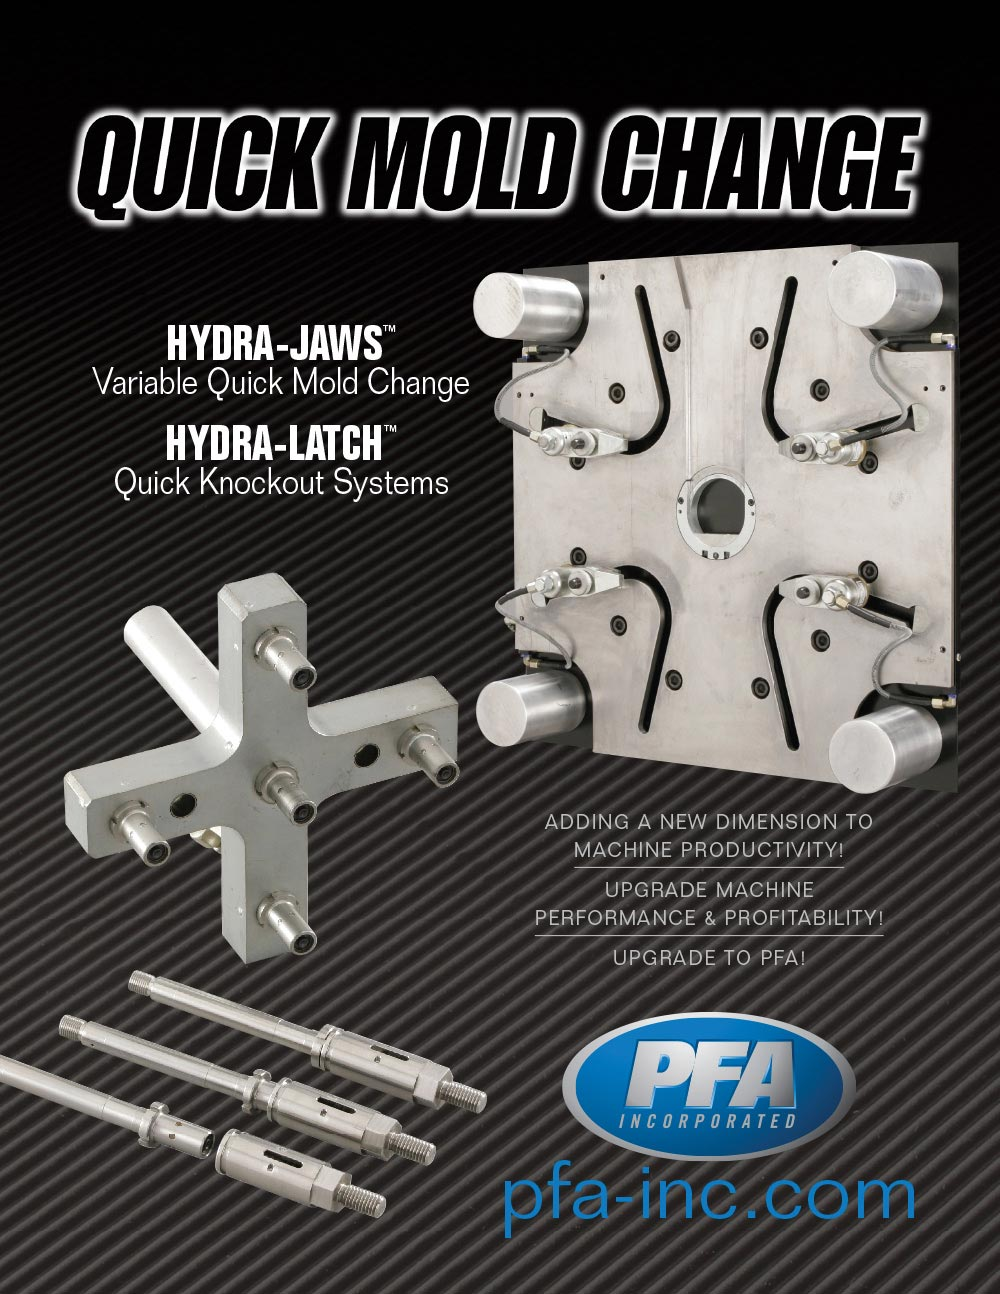 Quick Mold Change Catalog